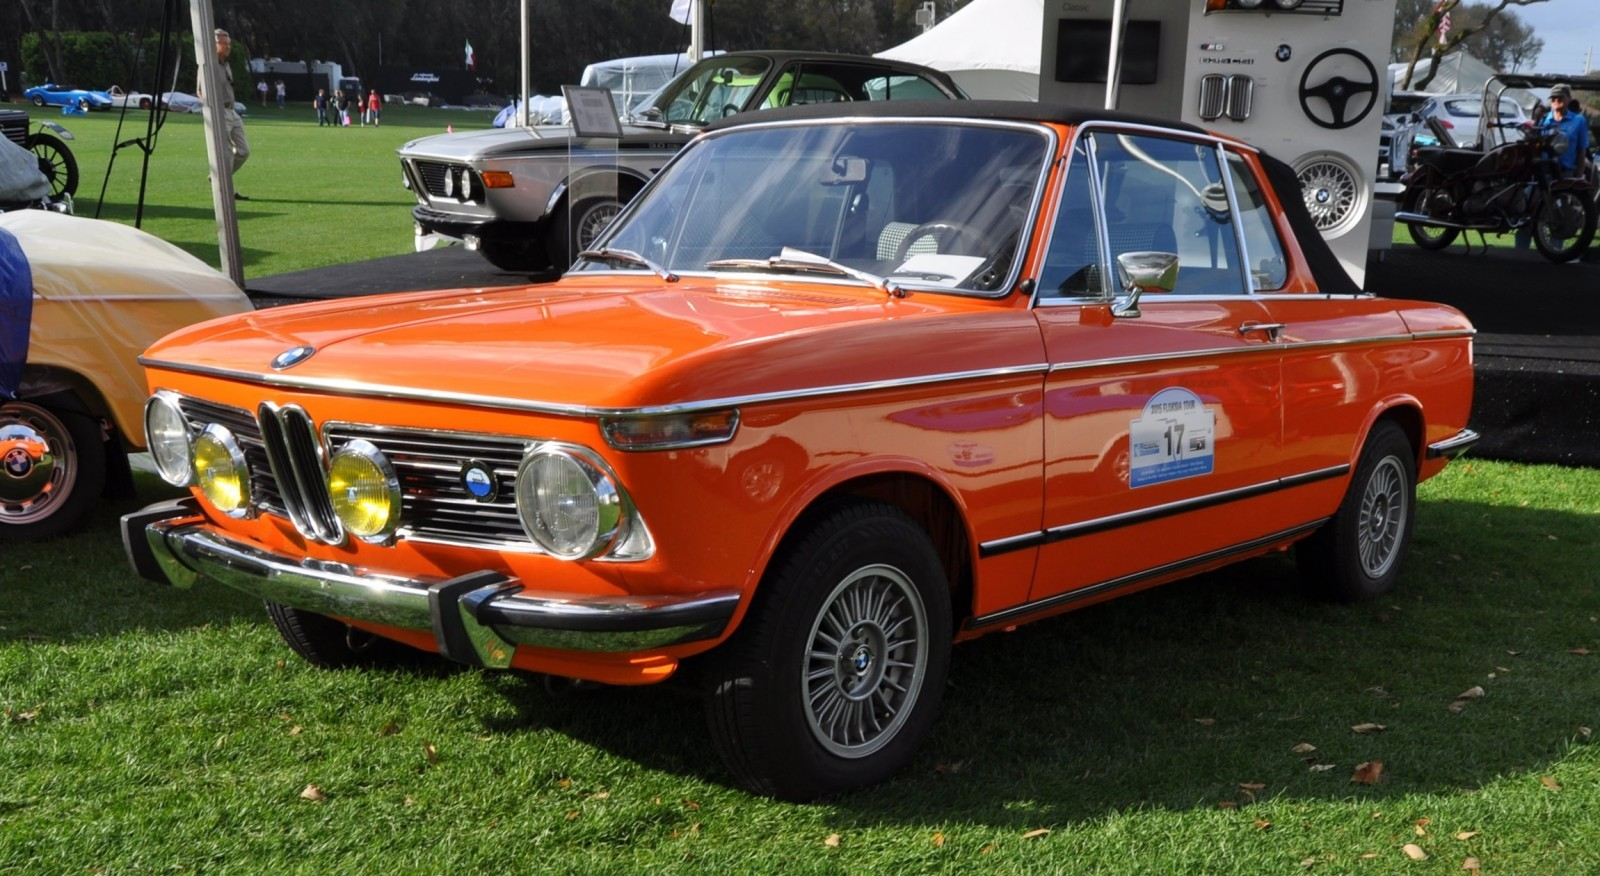 Amelia Island 2015 - BMW Brings 507, M1, CSL and tii To Join 2015 X5 M and 2015 650i M Sport 32